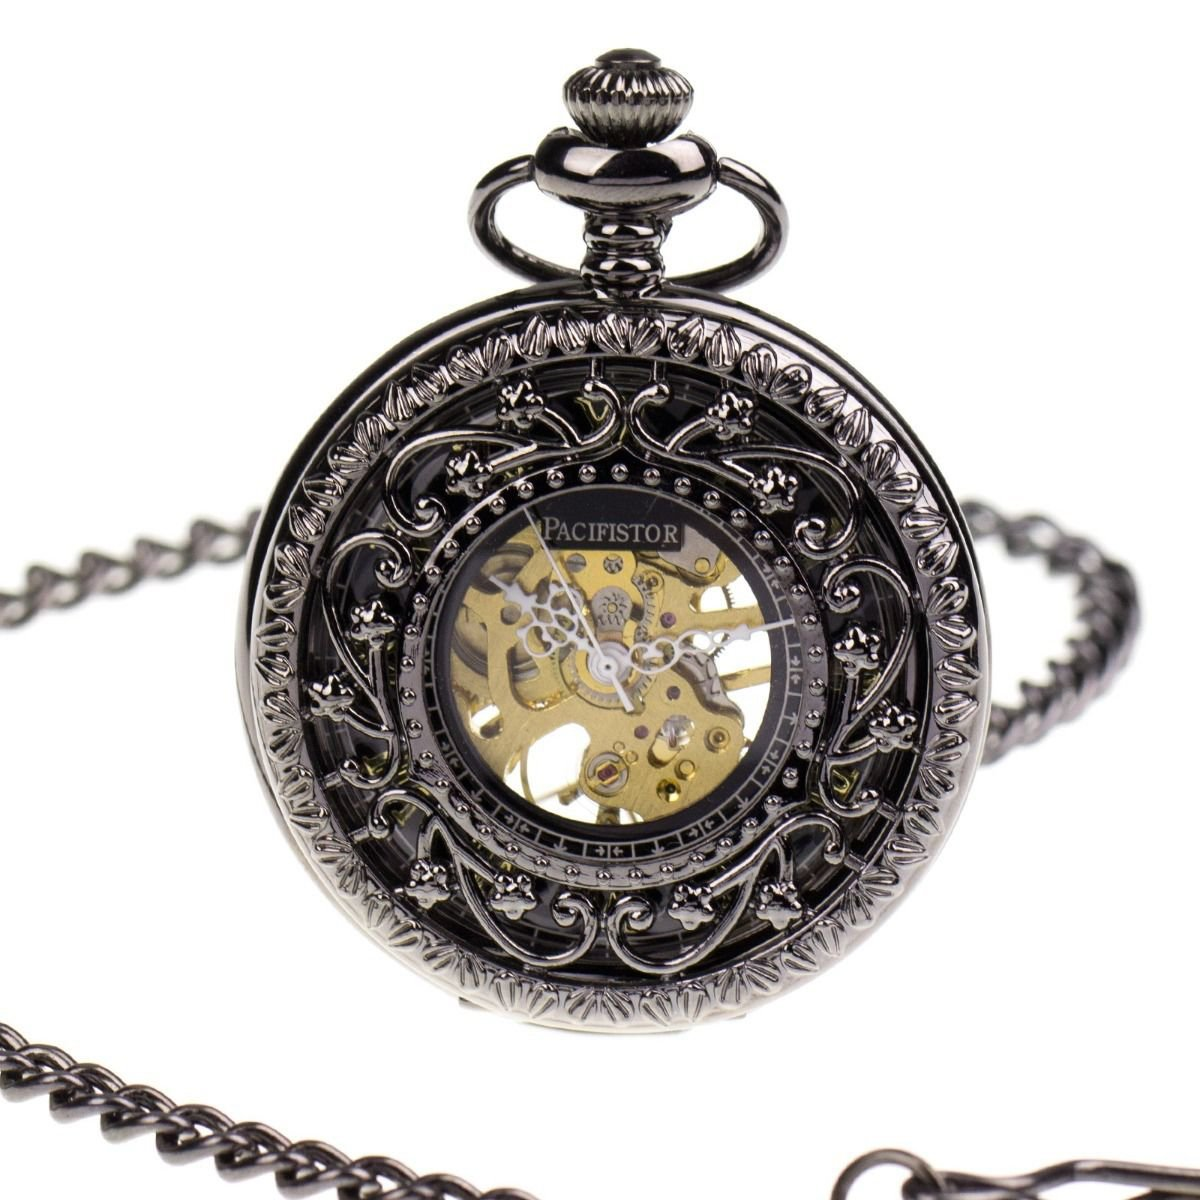 Pacifistor Half Hunter Hand Winding Skeleton Mechanical Mens Pocket Chain Watch